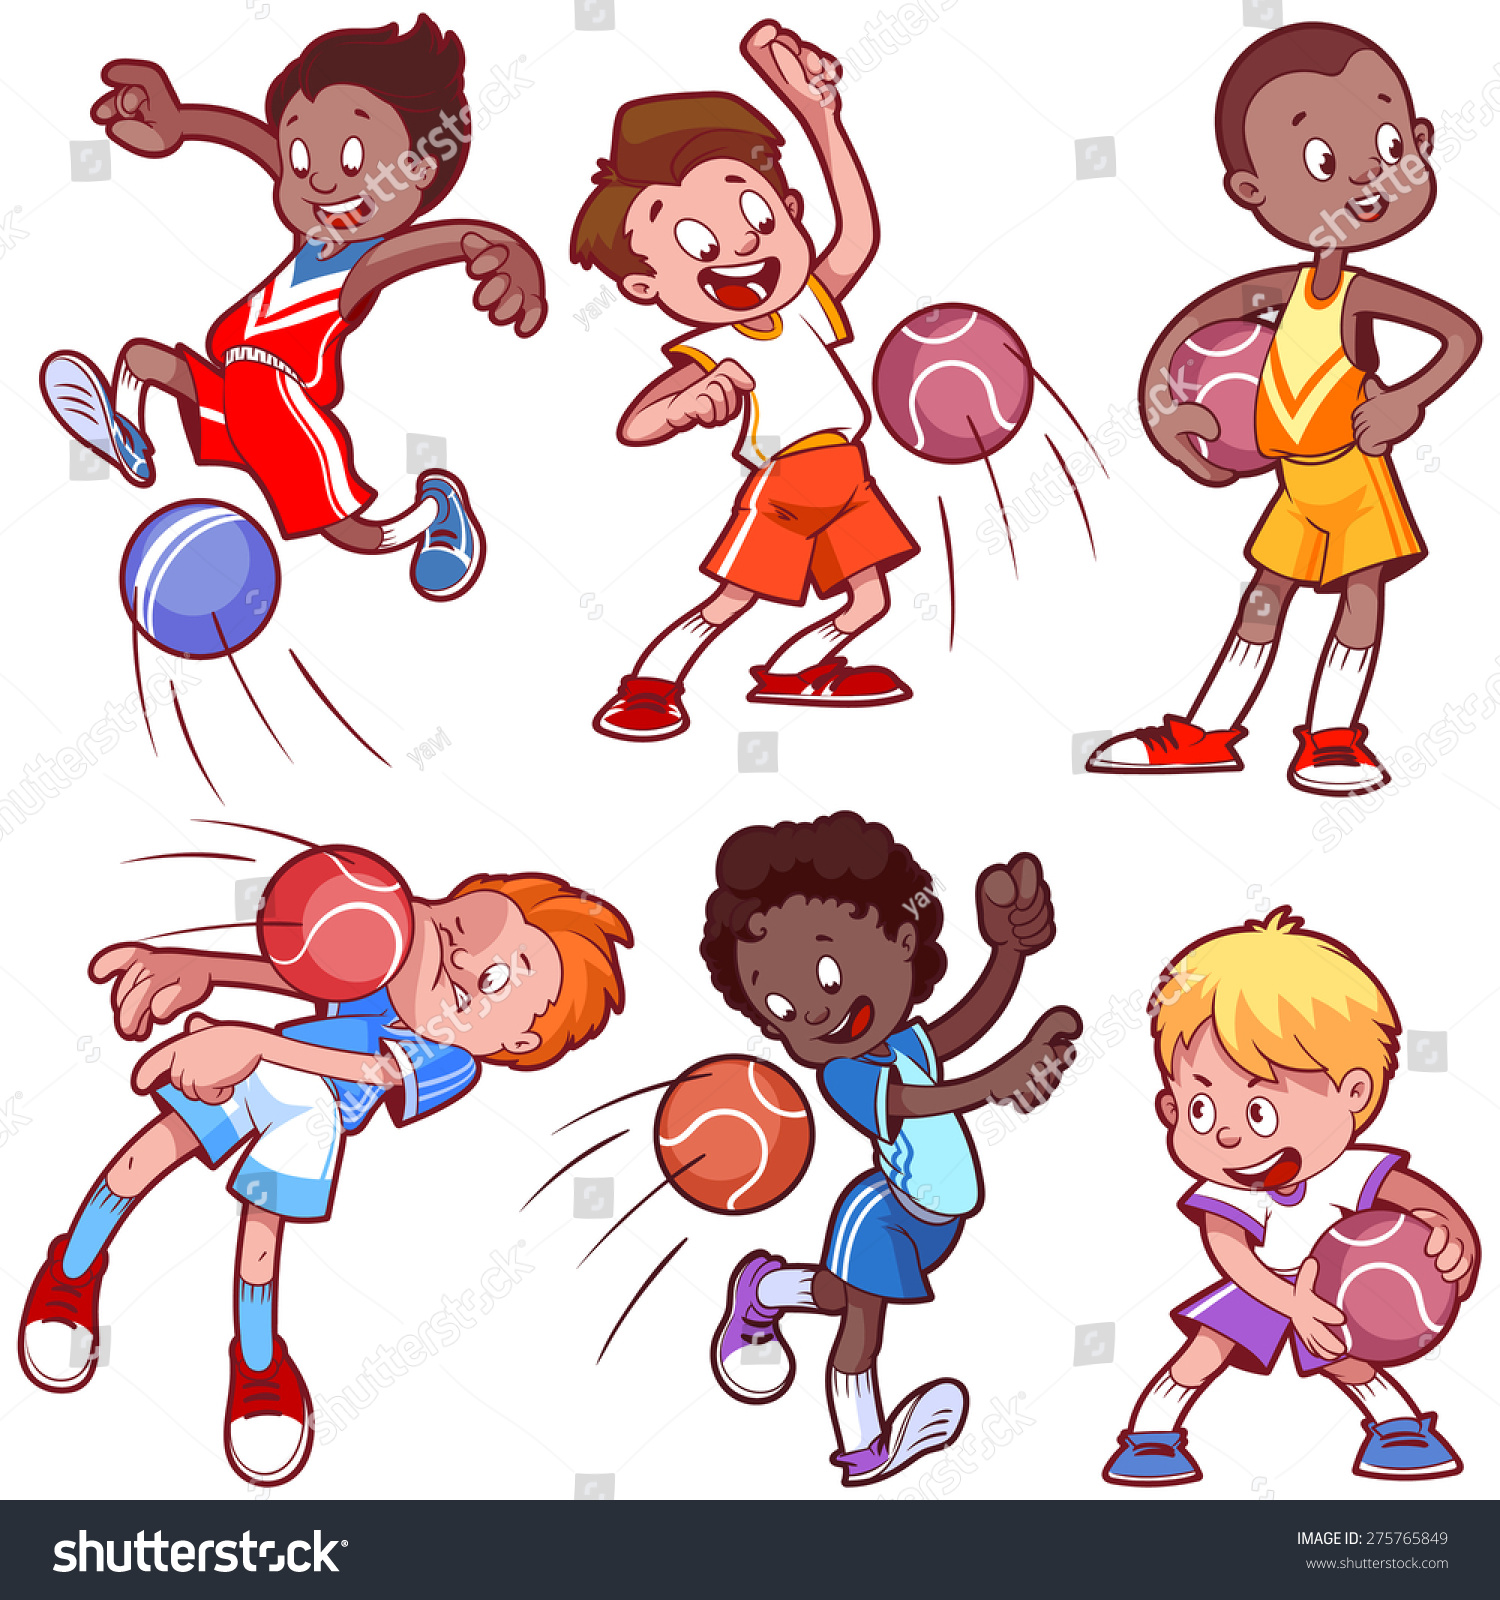 Clip Art Dodgeball Clipart cartoon boys playing dodgeball vector clip stock 275765849 art illustration on a white background